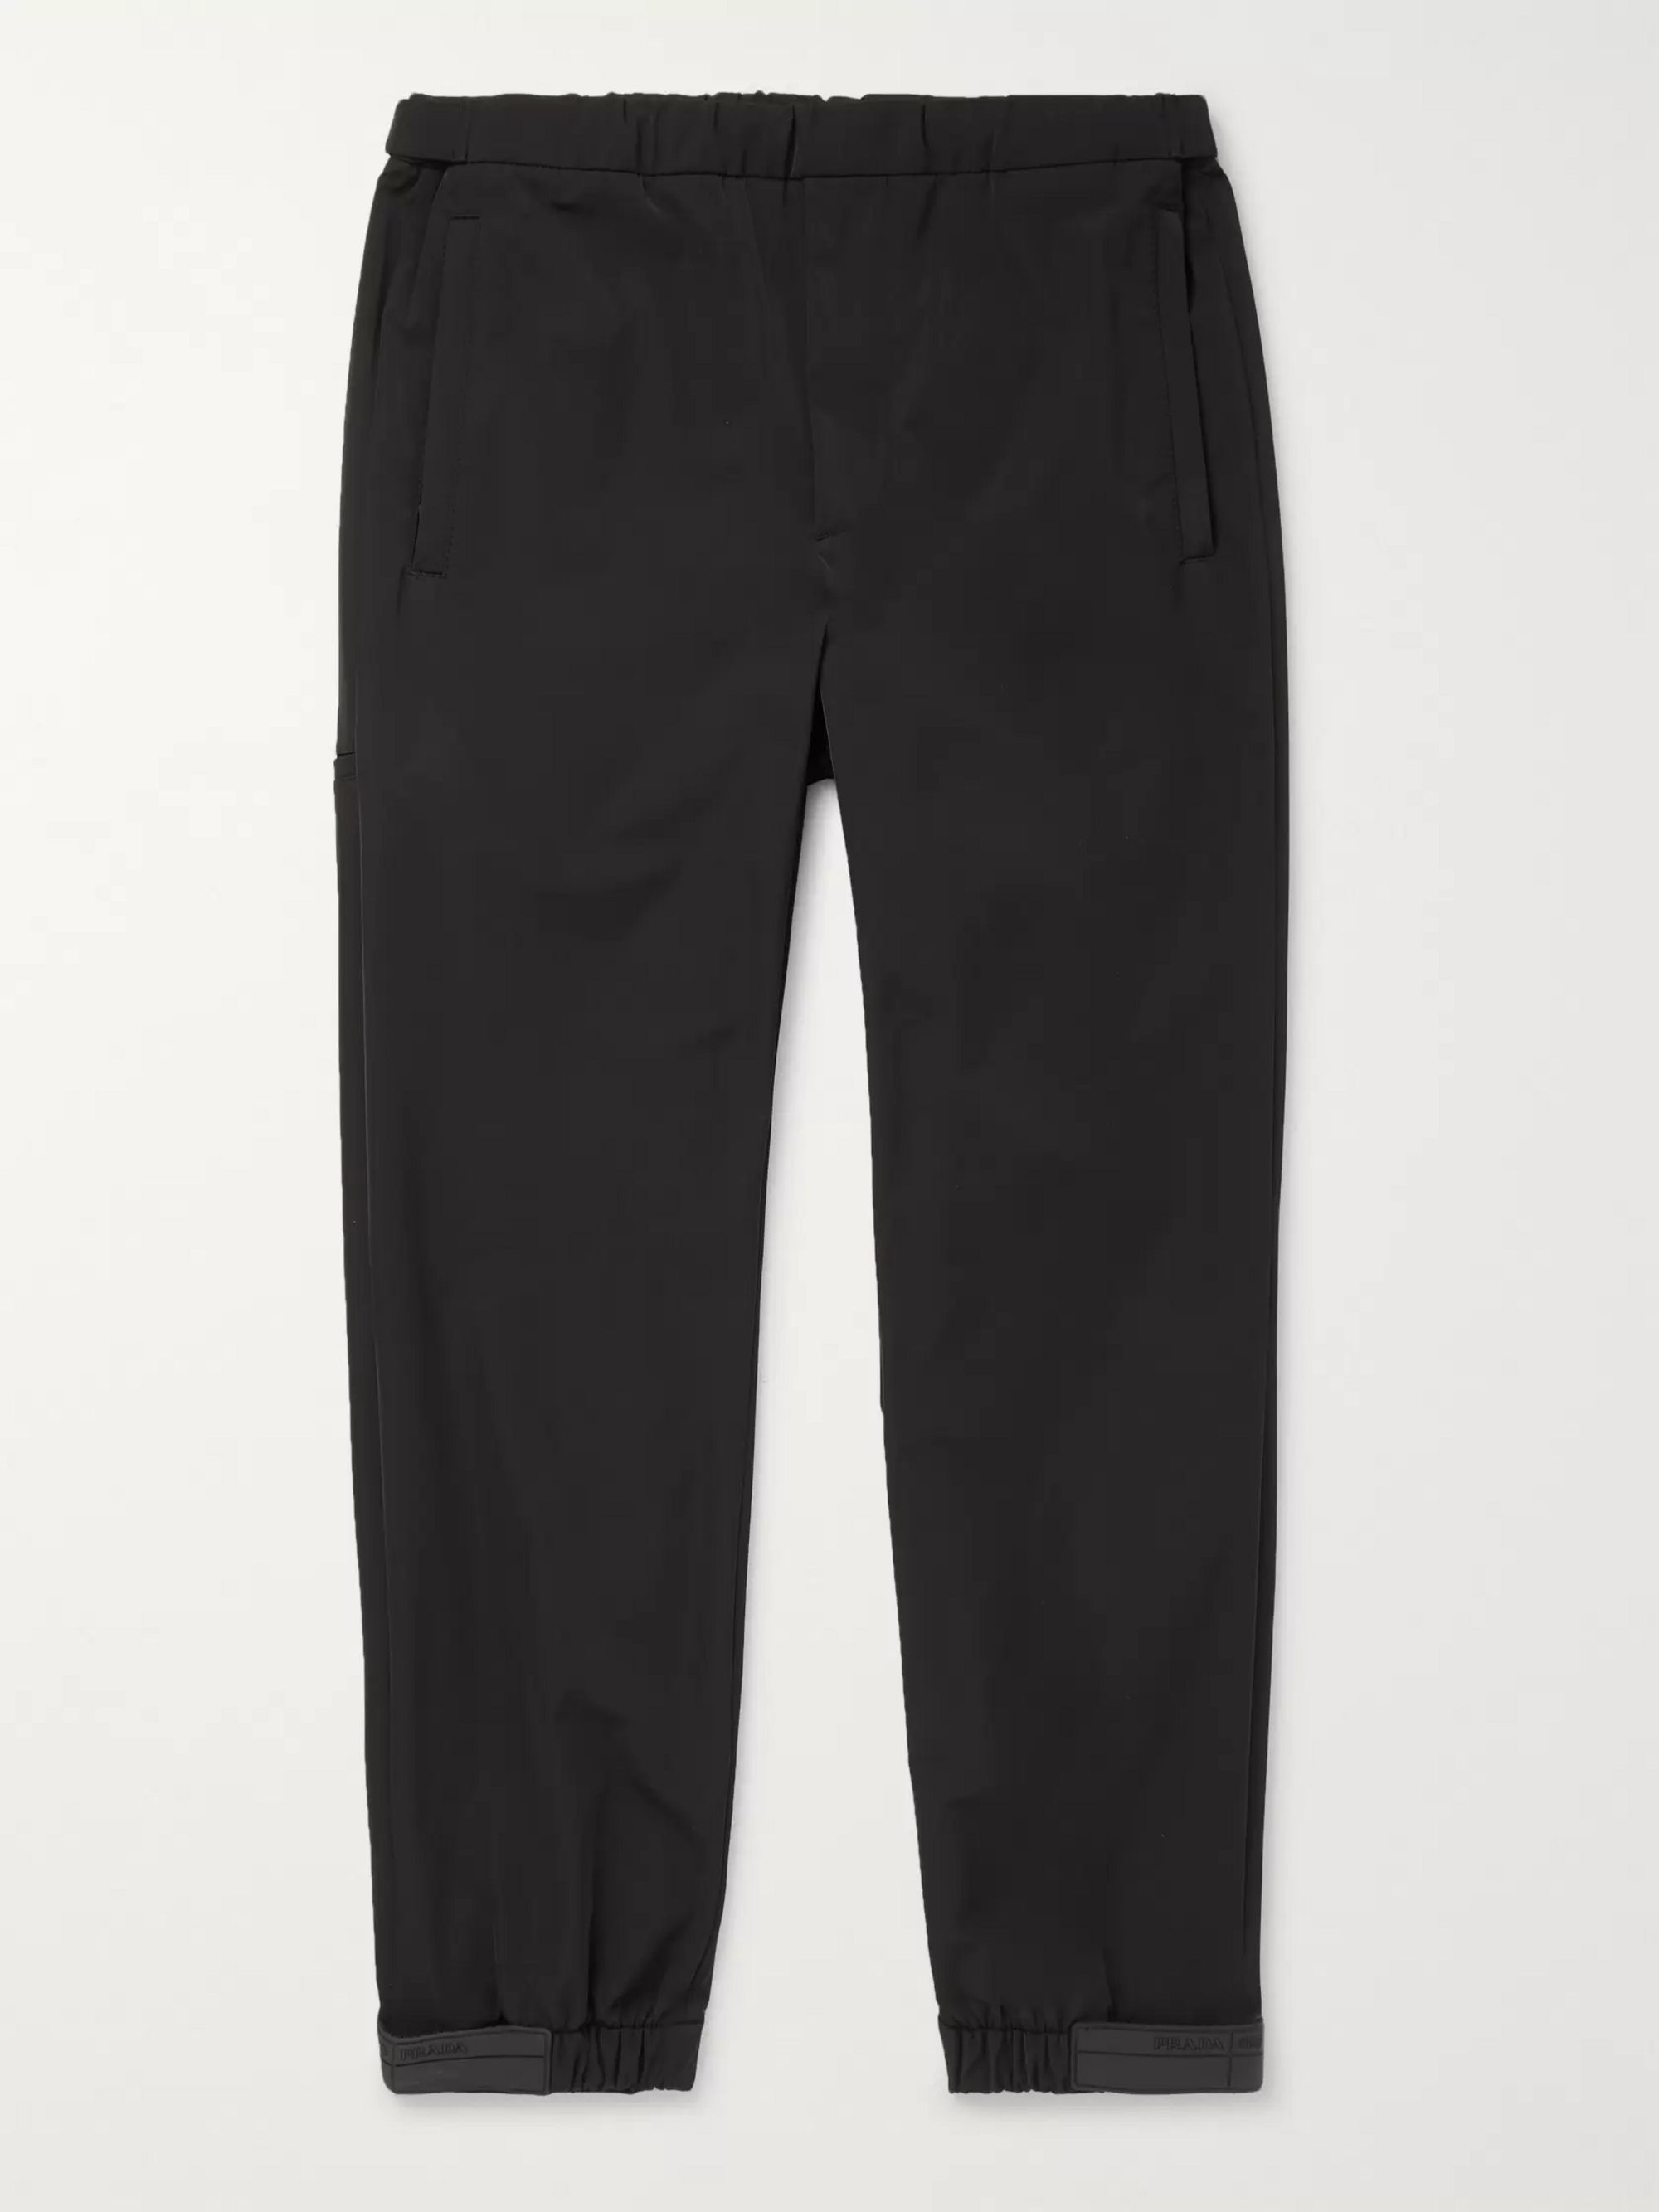 Prada Black Tech-Nylon Drawstring Trousers